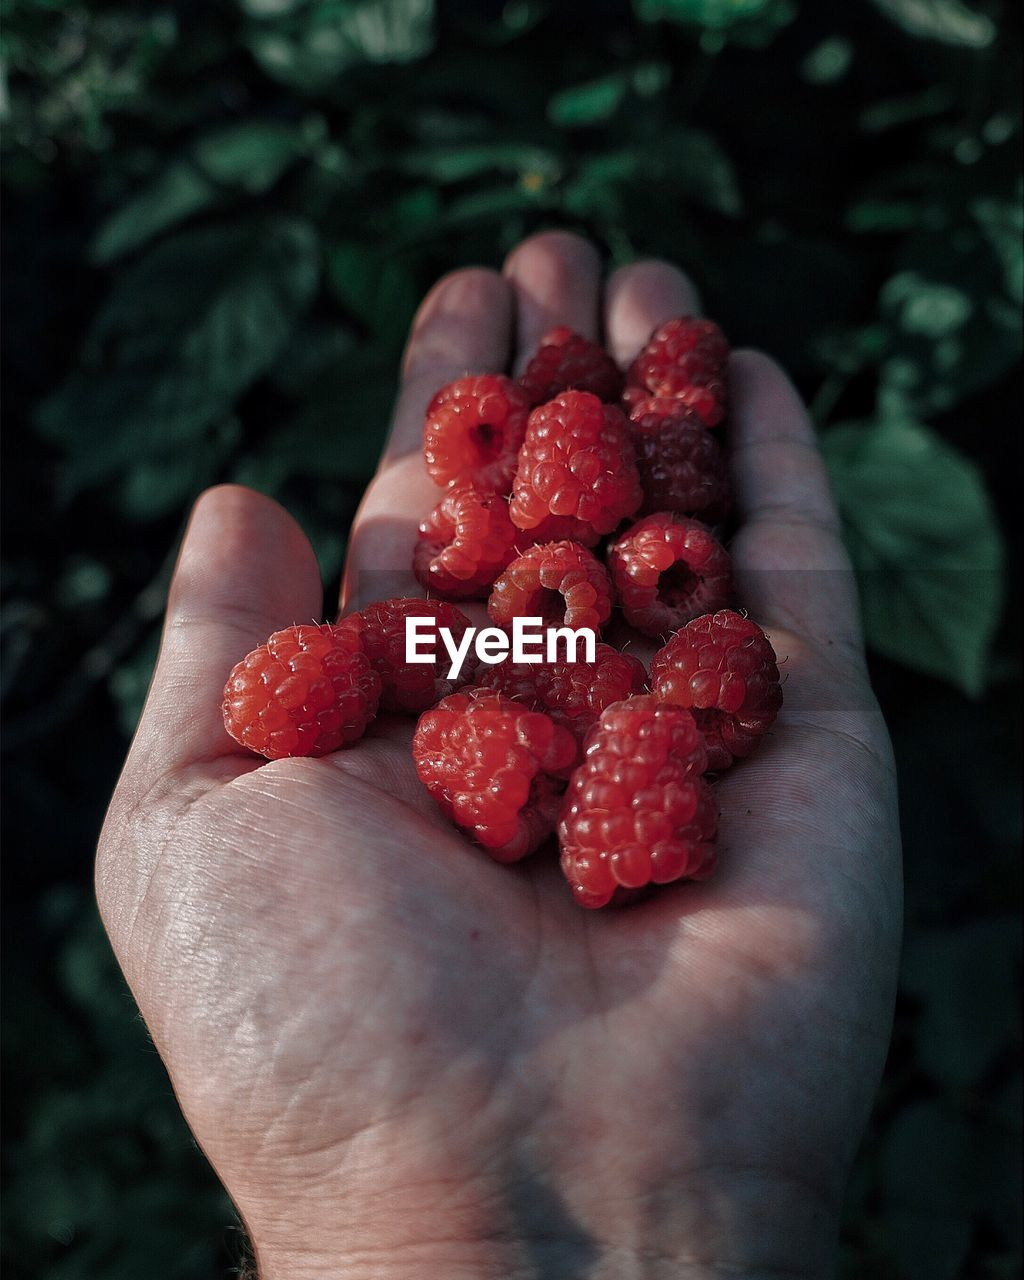 Cropped Hand Holding Raspberries Against Plants